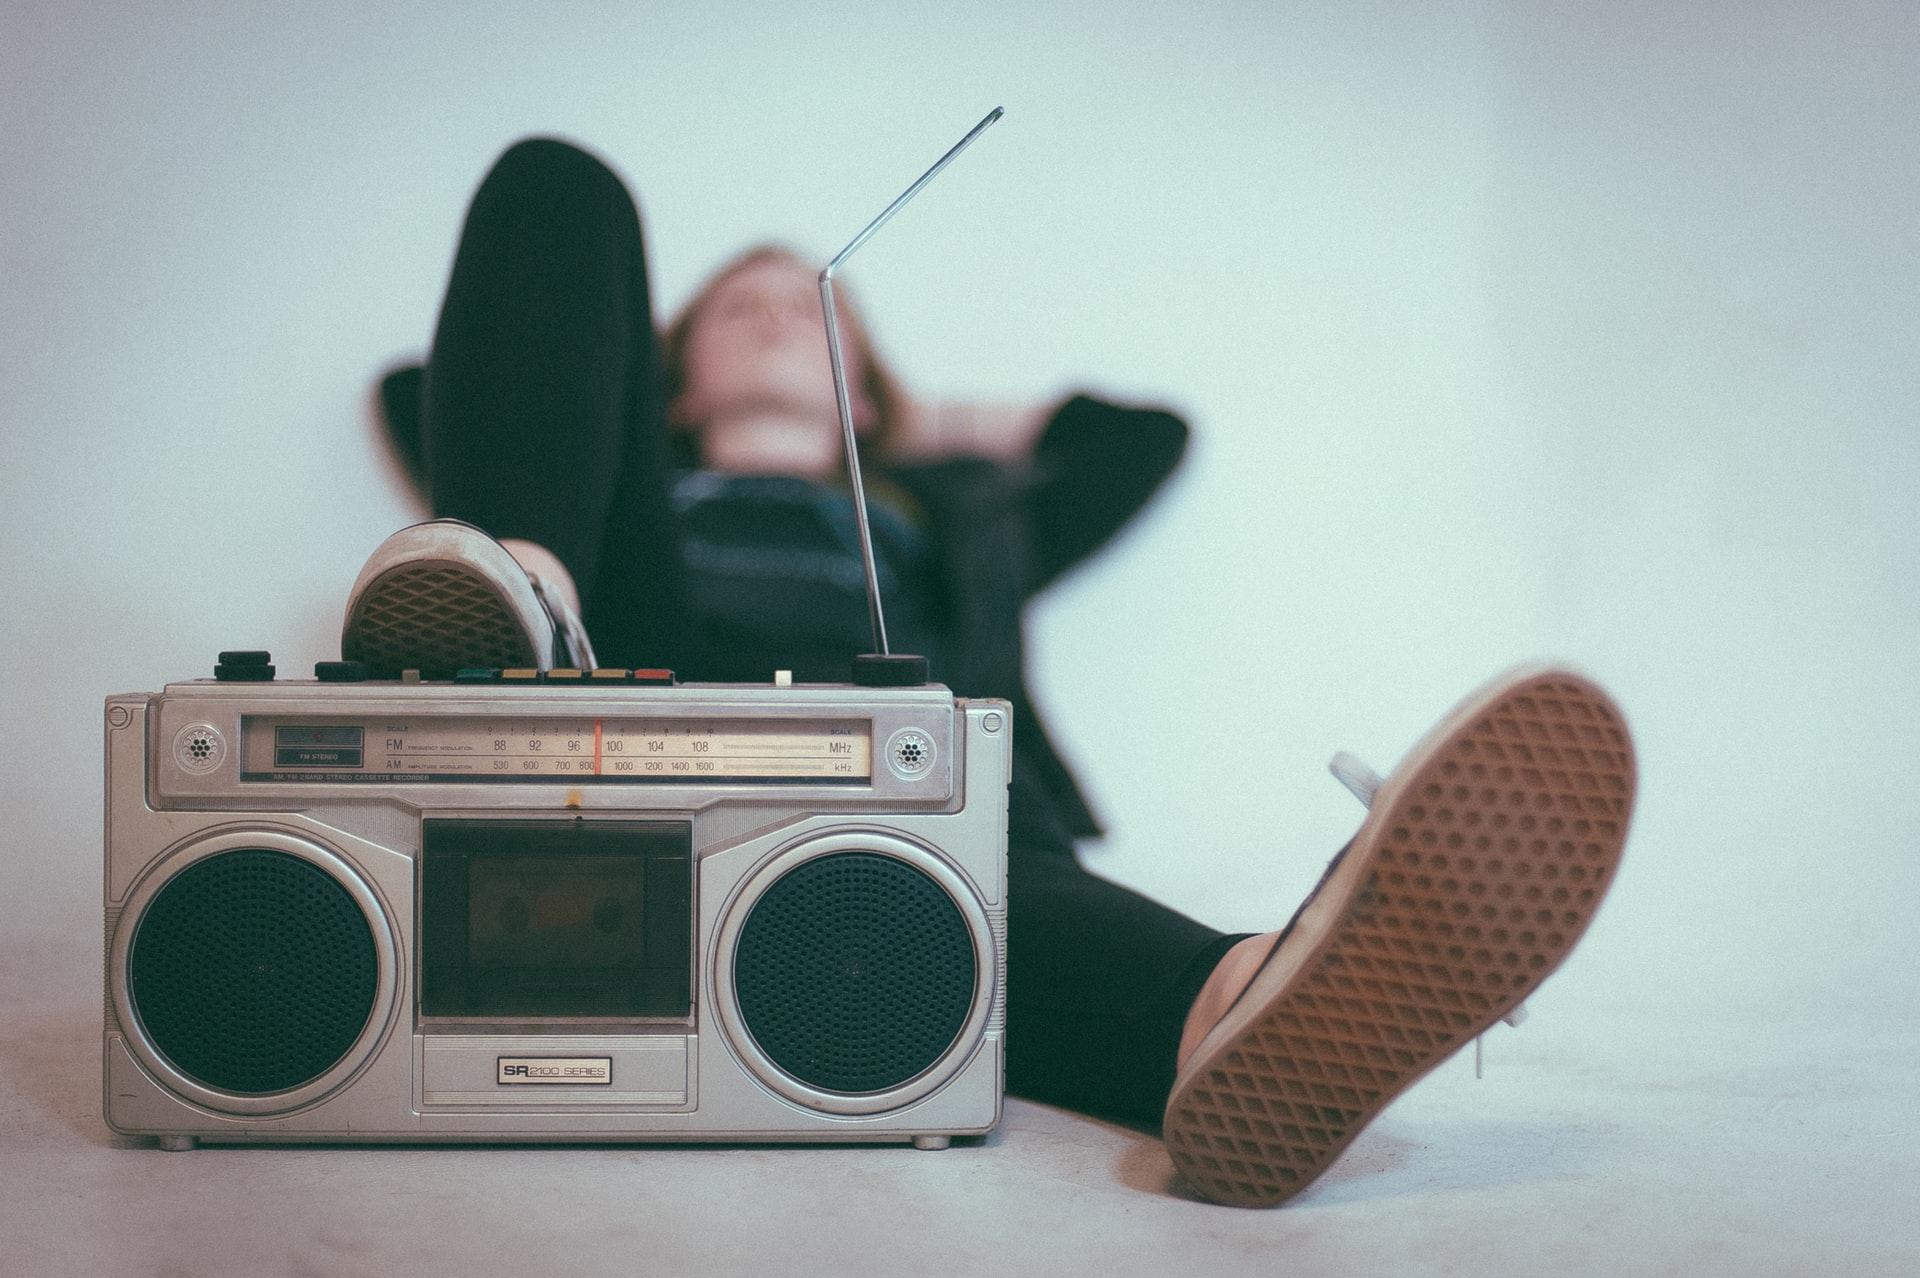 Woman laying on her back and resting her foot on a boombox. Photo courtesy of Eric Nopanen on Unsplash.